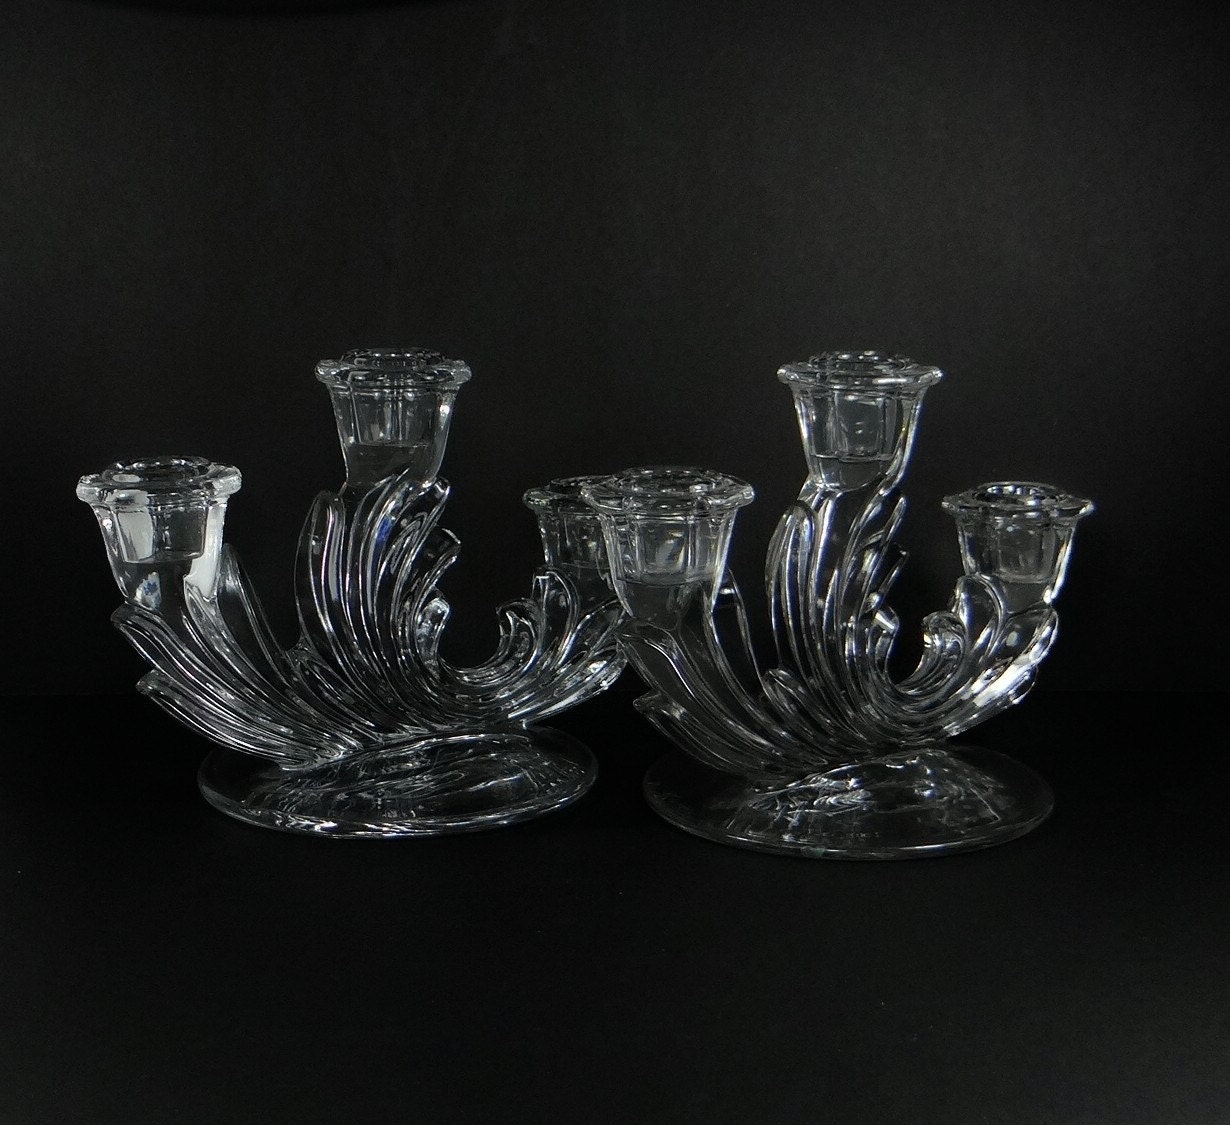 Baroque fostoria candlesticks depression glass 3 lite for Clear baroque glass